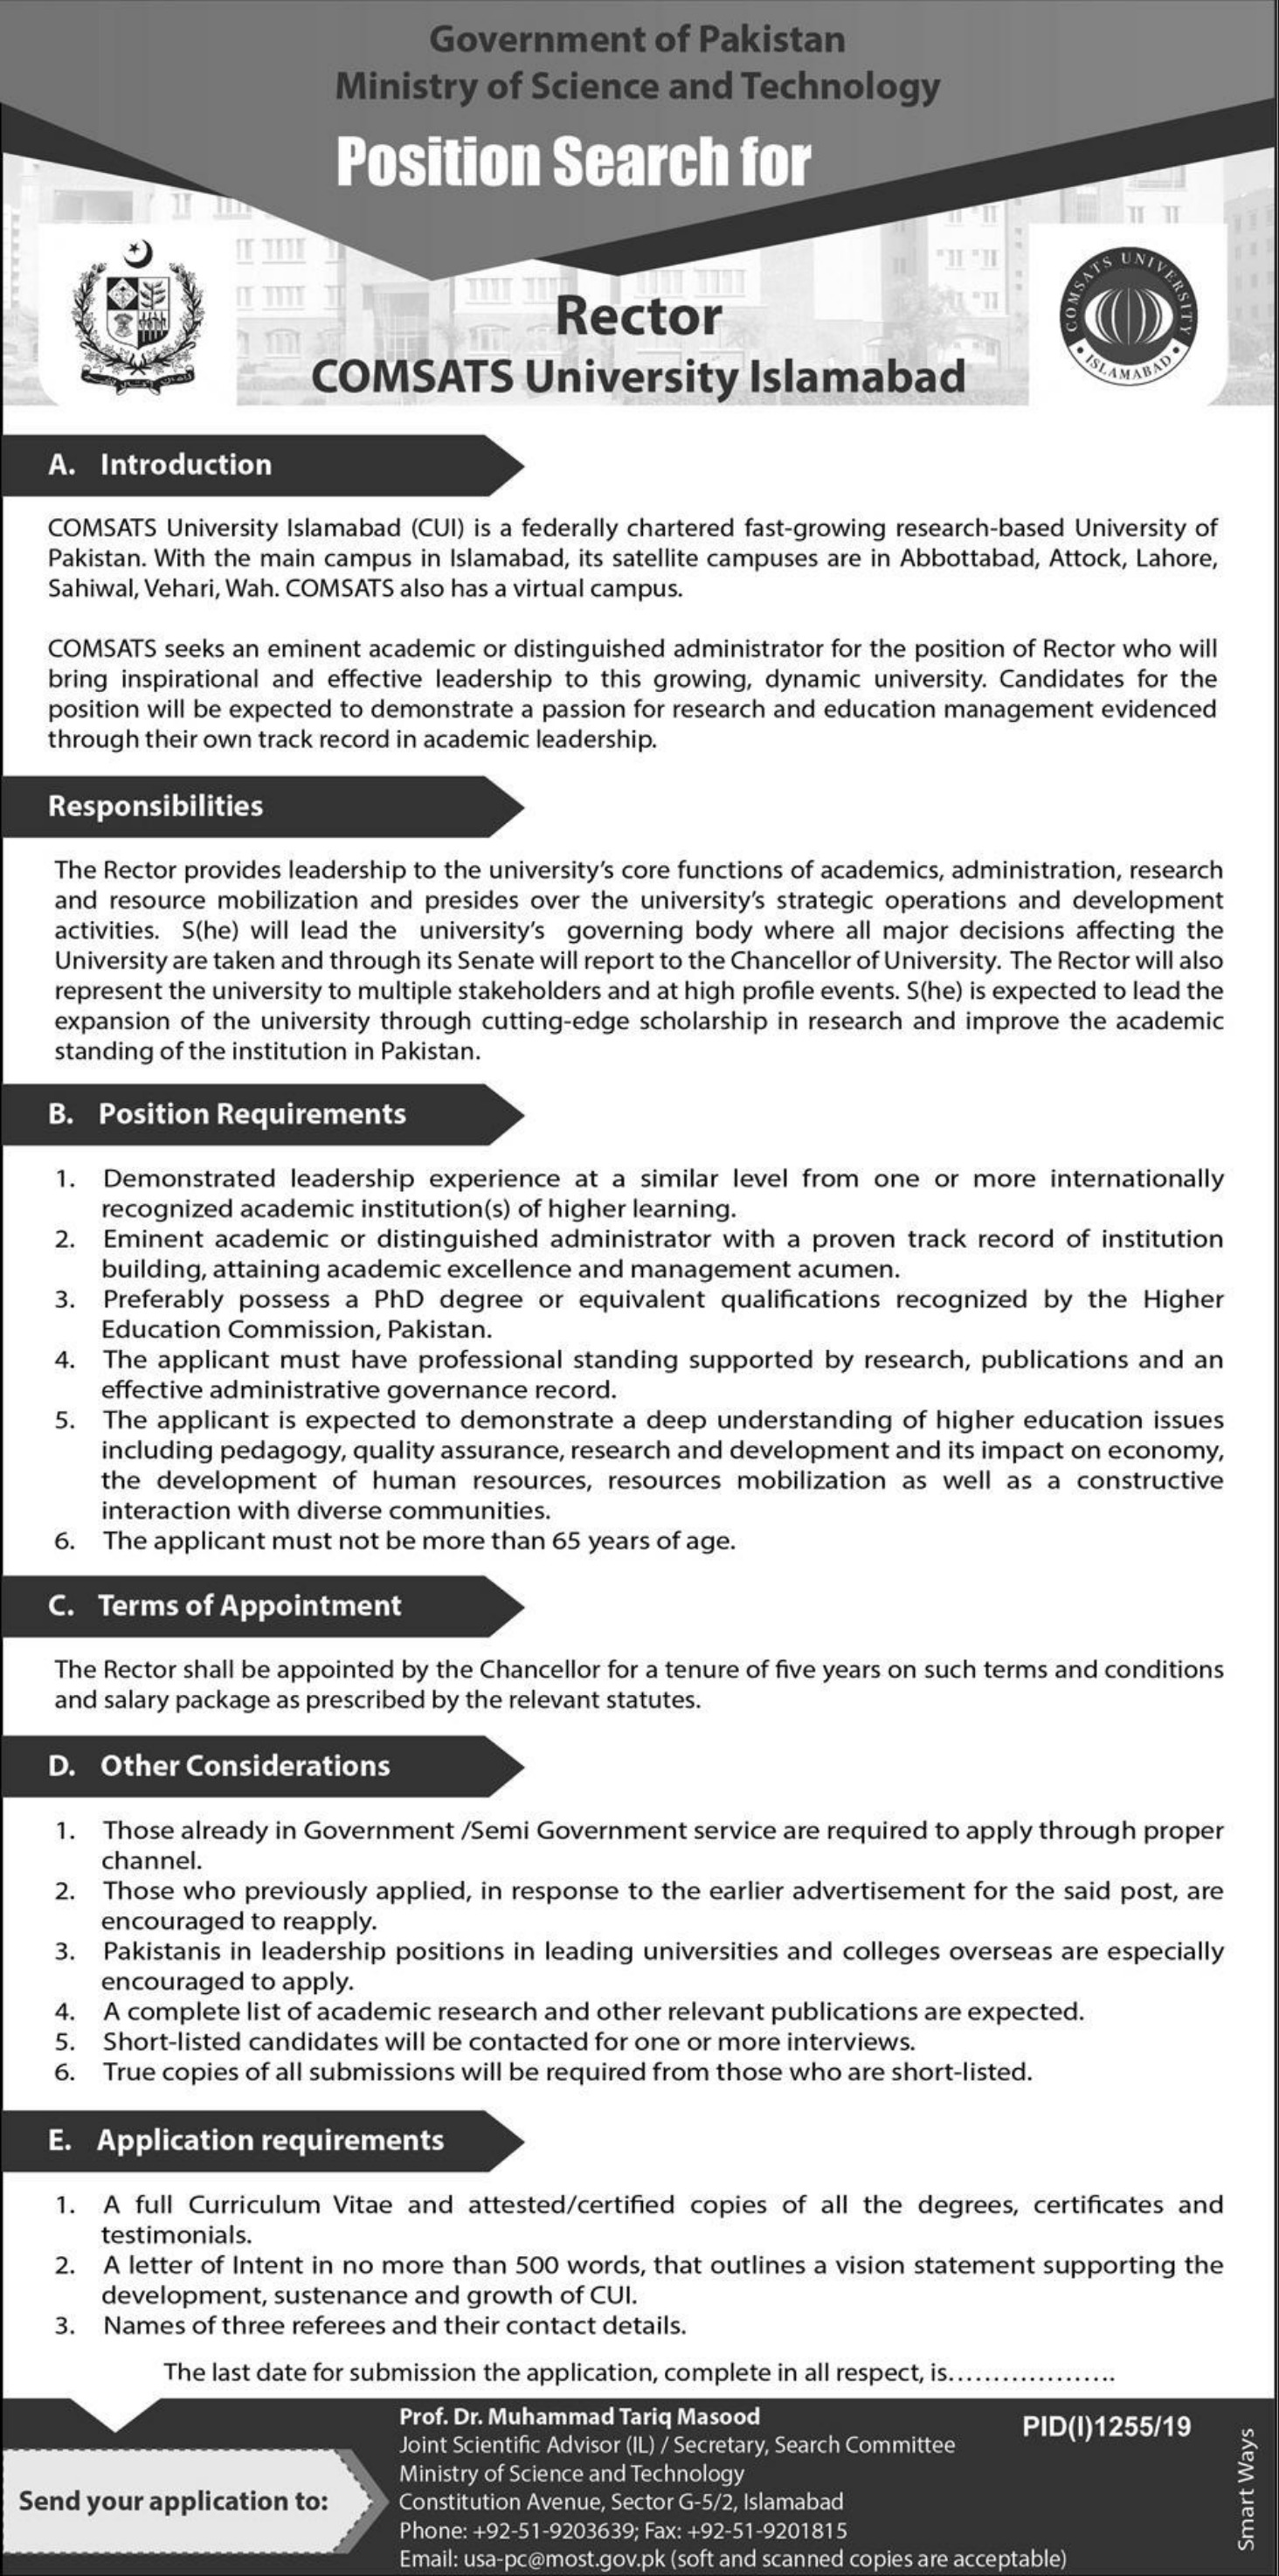 Ministry of Science & Technology Government of Pakistan Jobs 2019